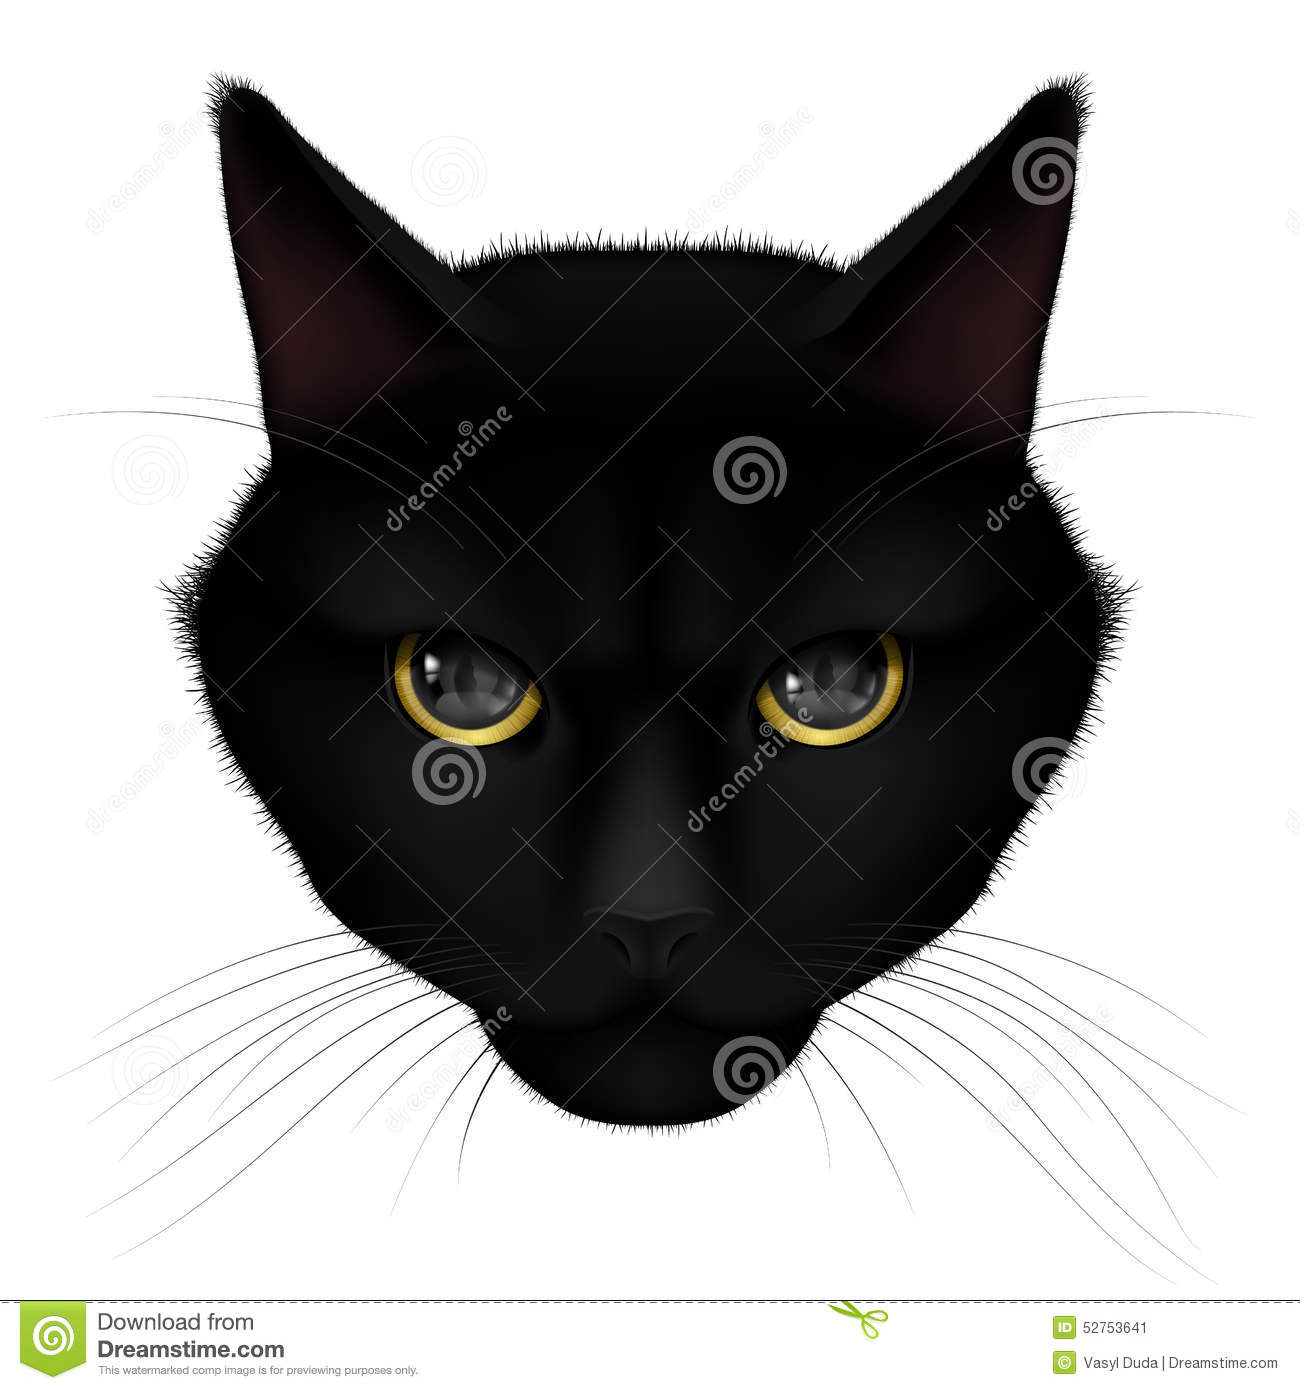 Black Cat Stock Vector - Image: 52753641